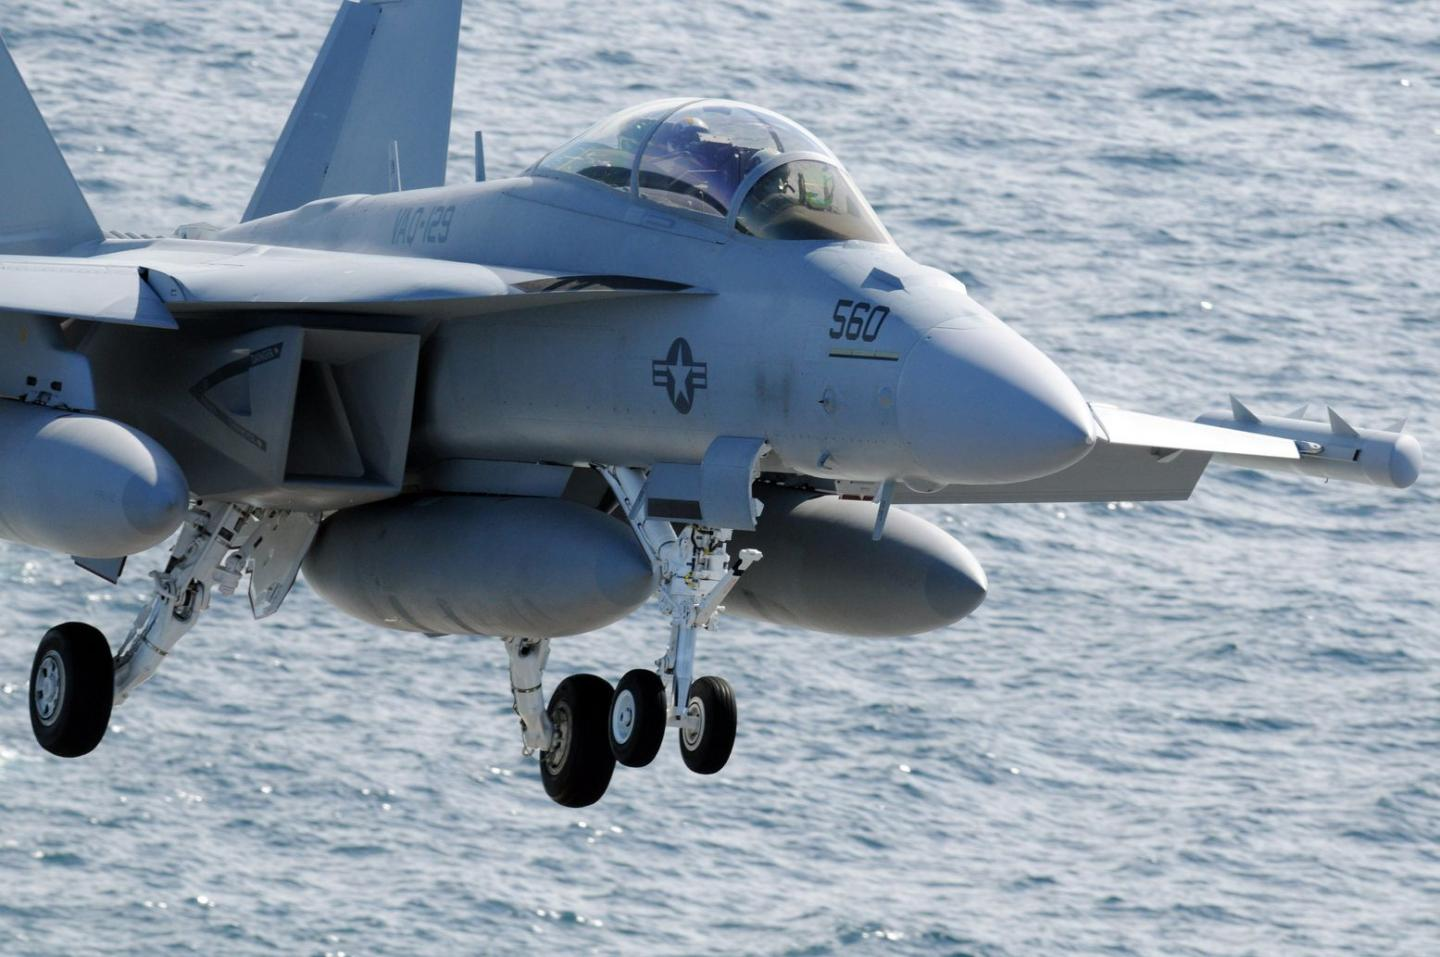 Video Alert: Check out This EA-18G Growler Cruise